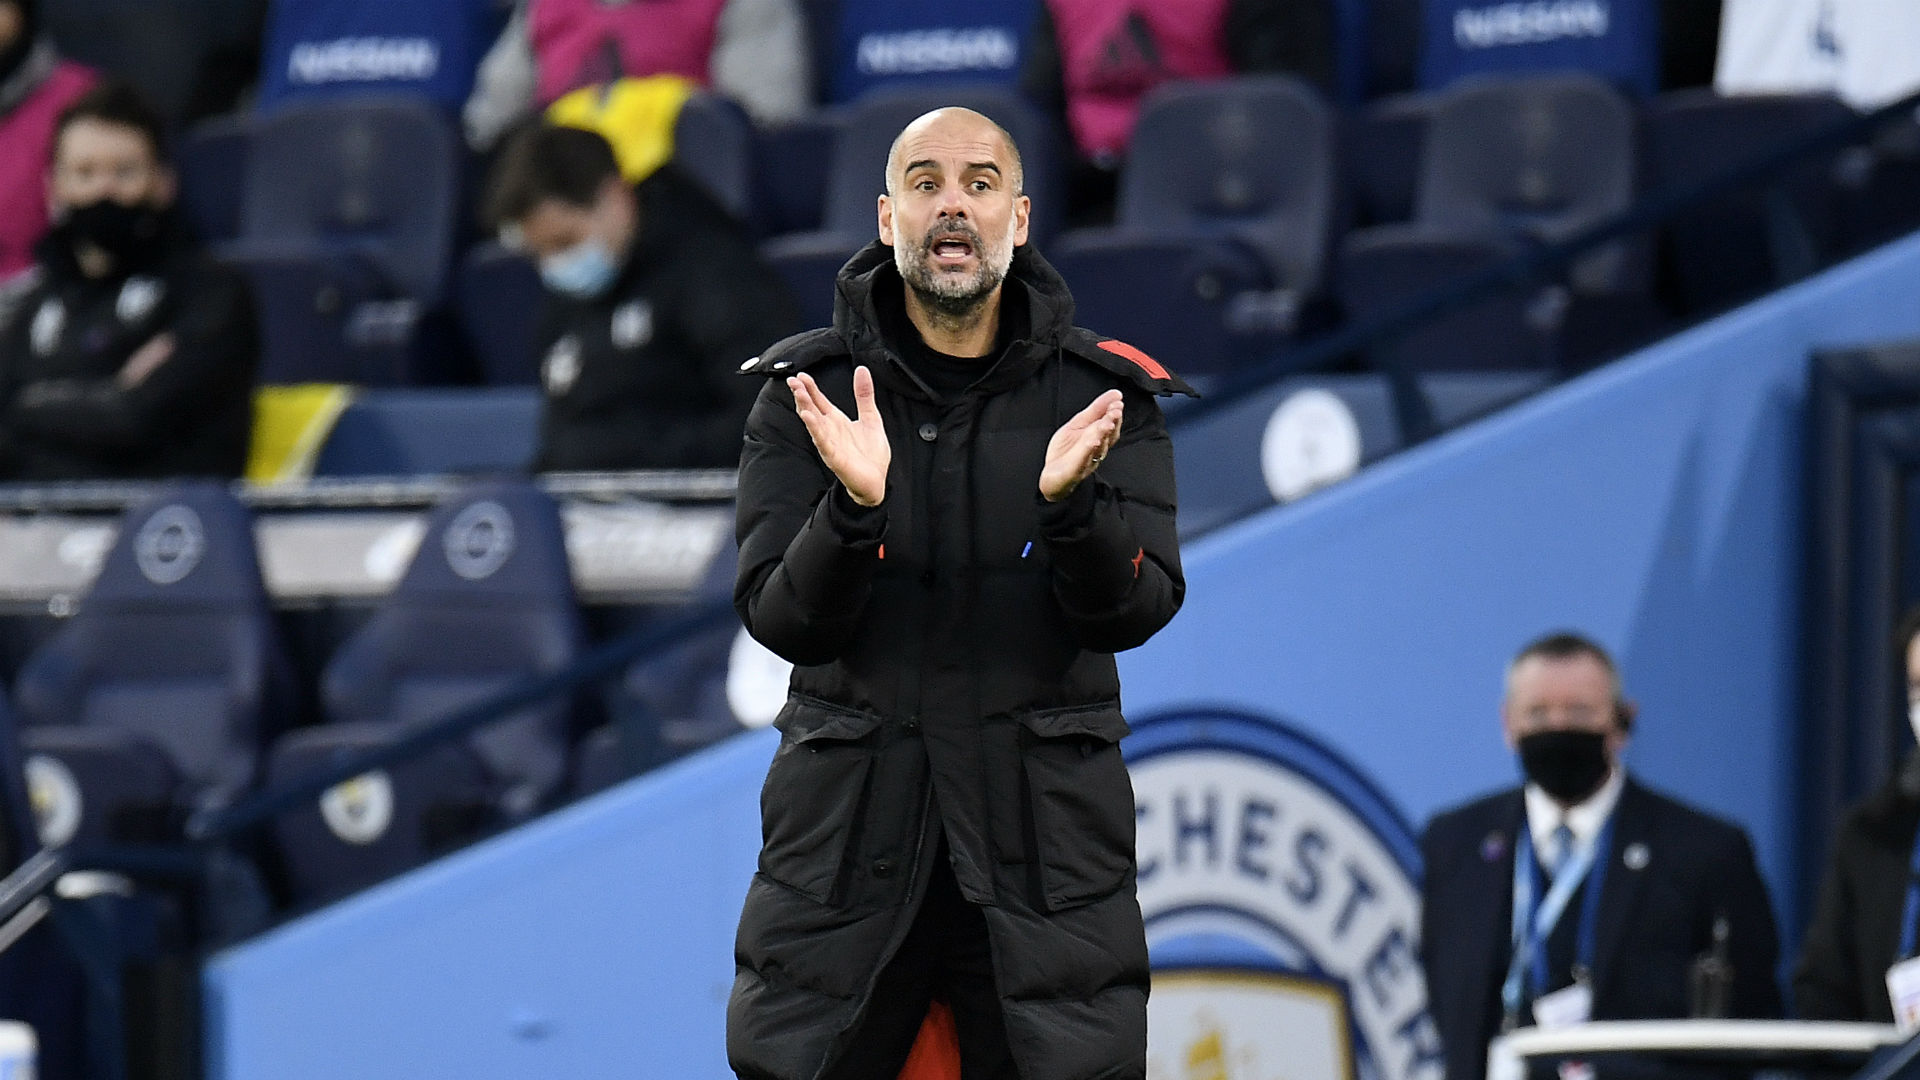 Guardiola admits to uncertainty over how players will return after contracting COVID-19